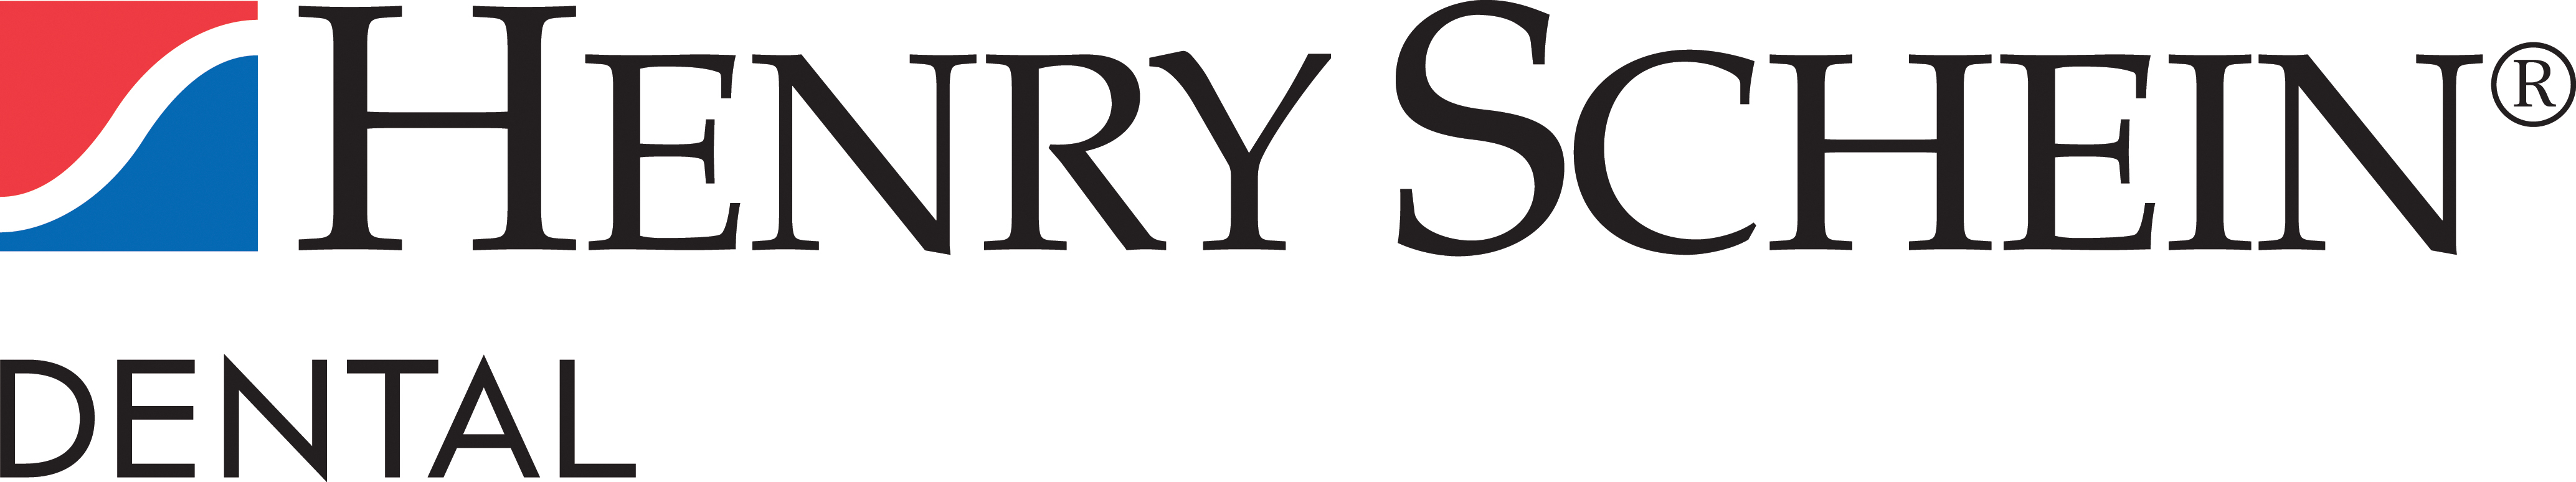 HenrySchein_Dental_logo